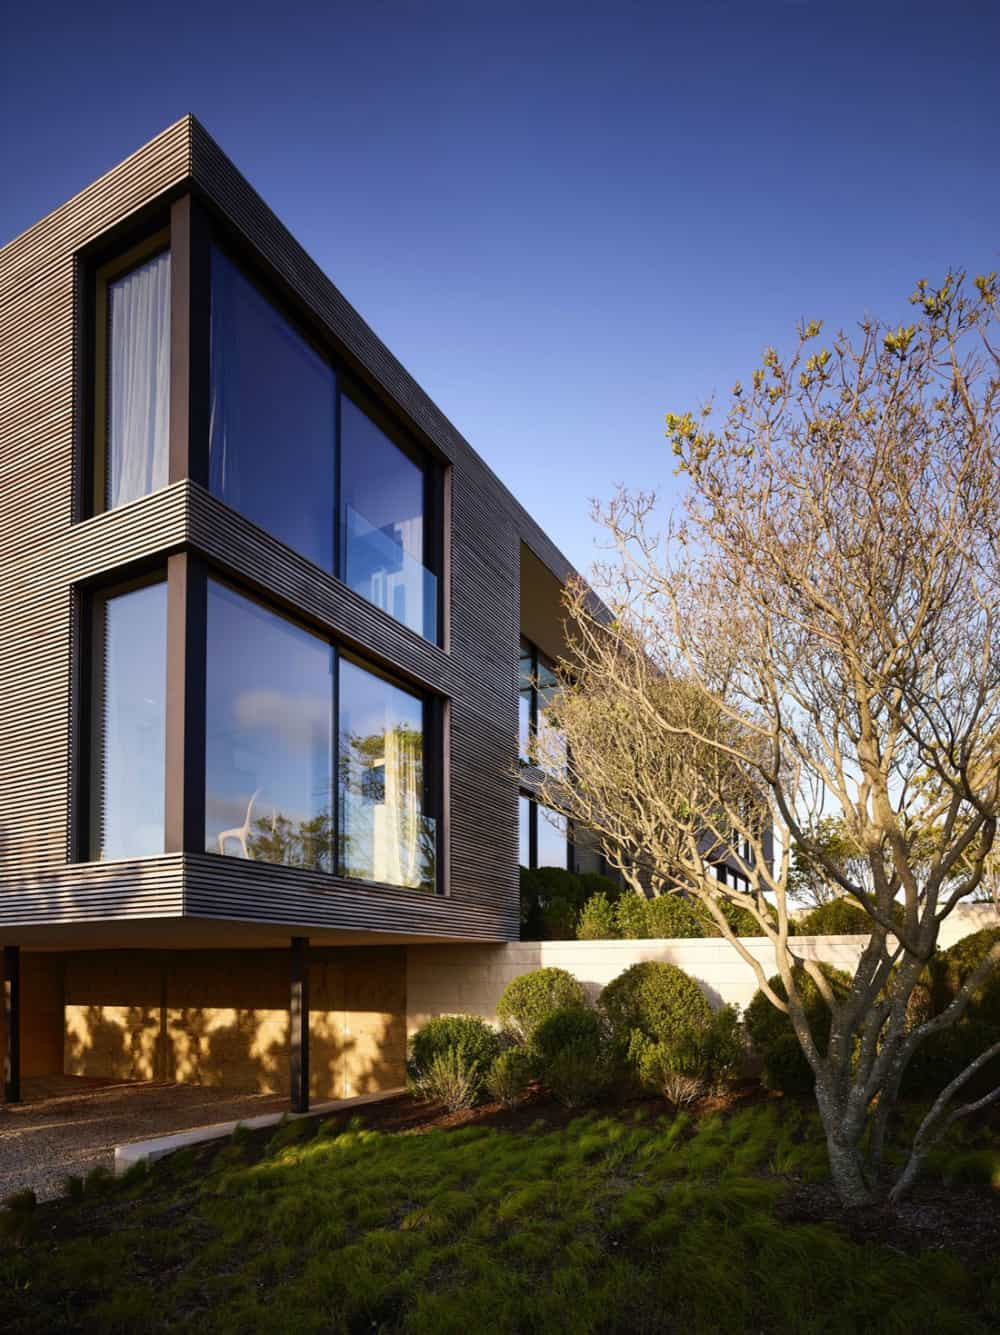 Flattering wooden siding interchanges with reflective windows